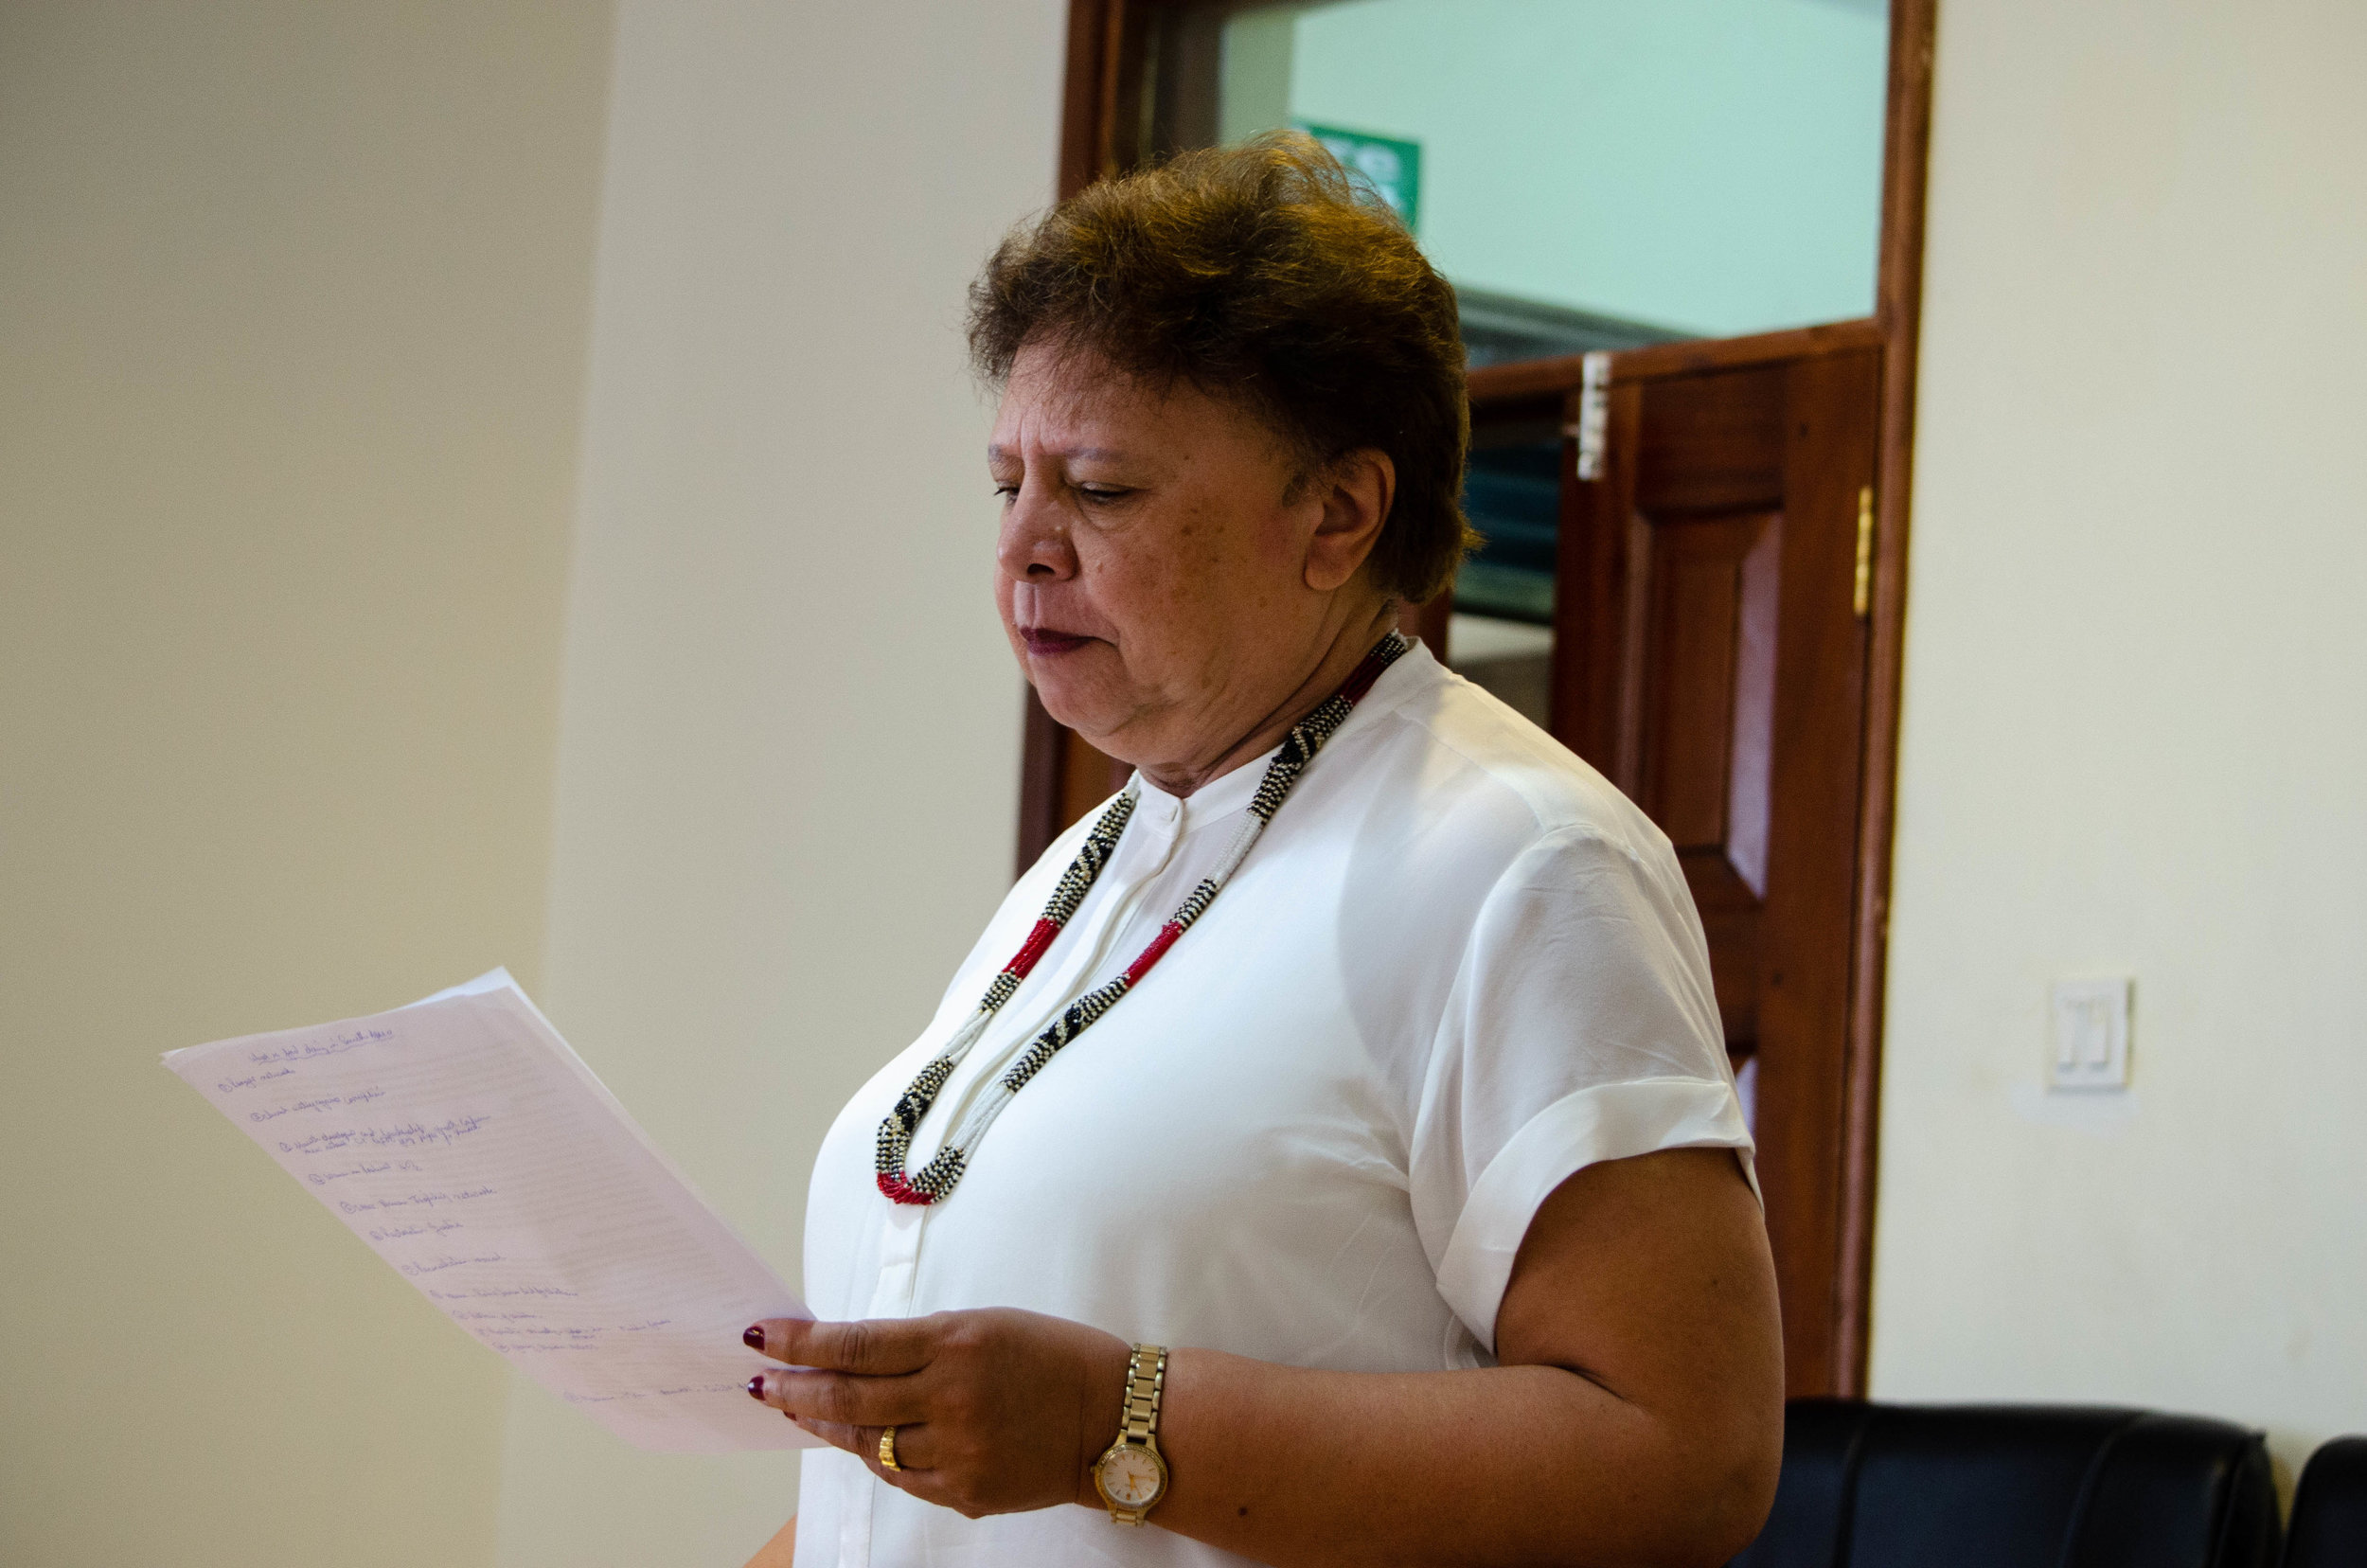 SOUTHERN AFRICA - Esmé Bowers, Tirzah's regional leader in Southern Africa, trains key leaders in the nations throughout her region. Trainings focus on preparing women for leadership in both church and community. Esmé also teaches both men and women on gender issues that prevent women from stepping forward into leadership.